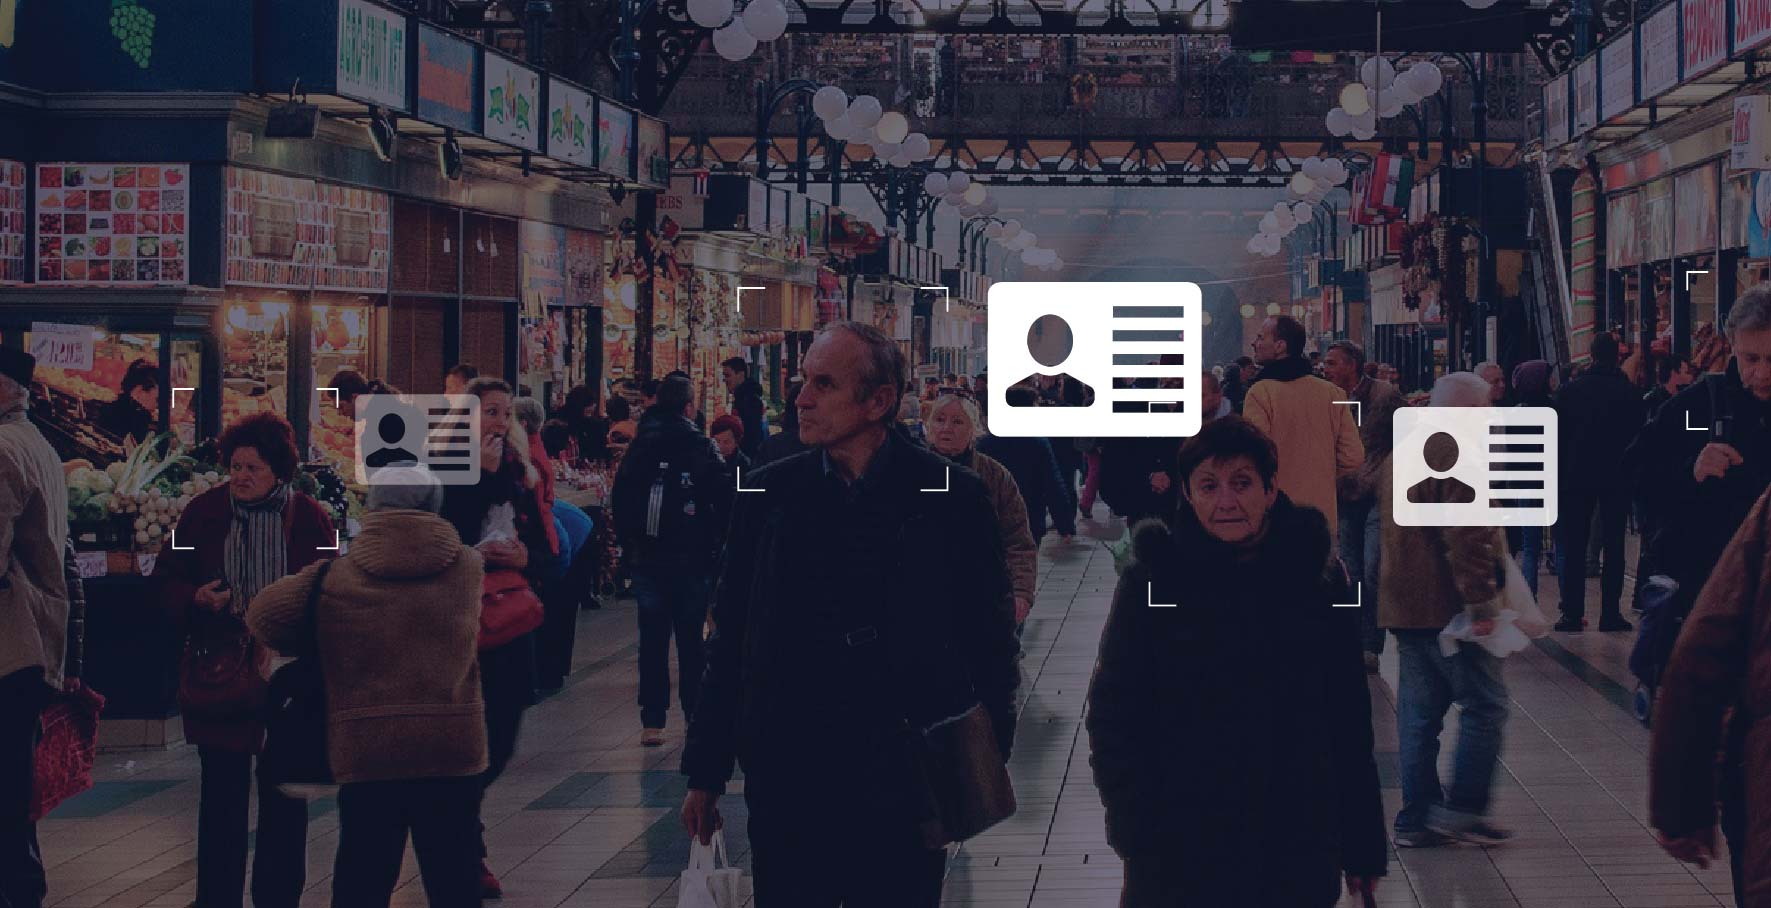 Face Recognition with Computer Vision